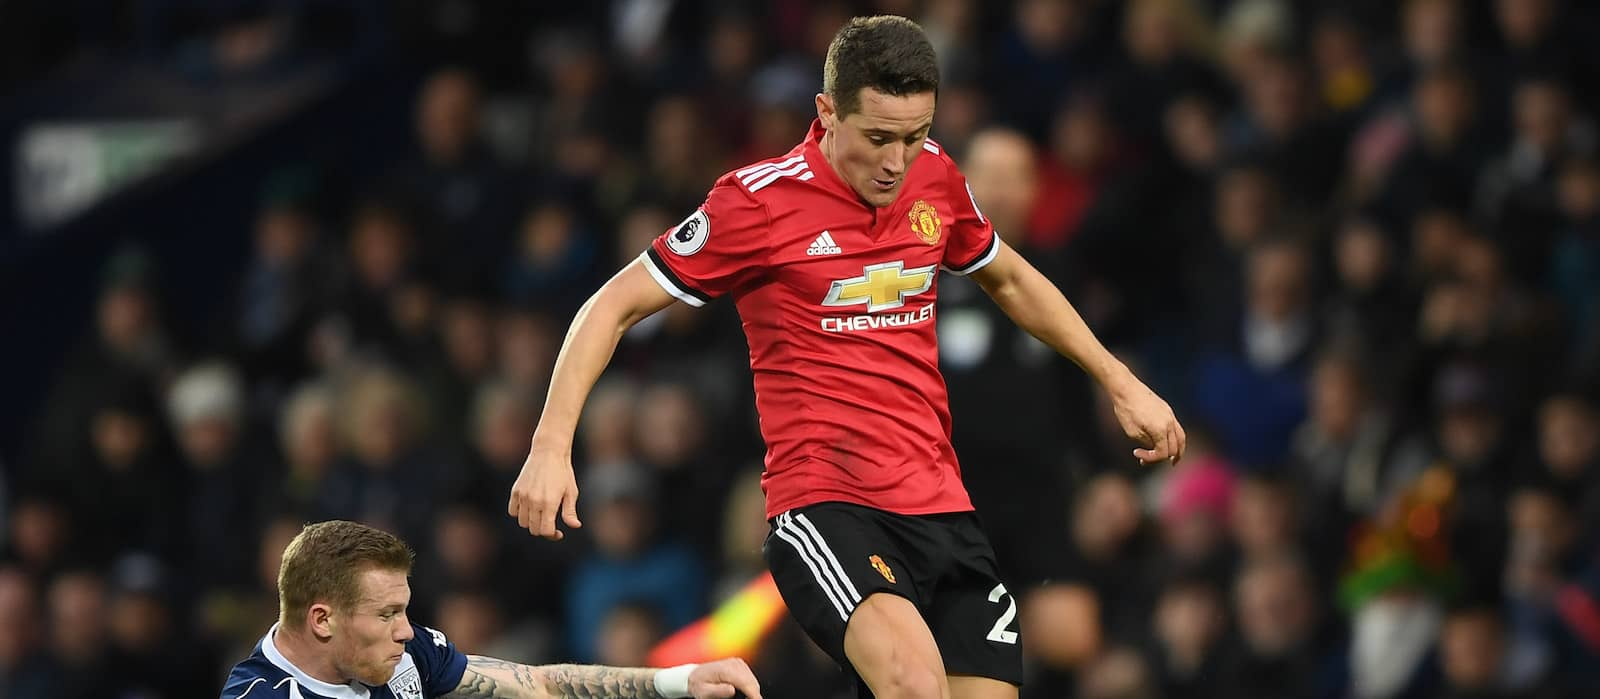 Atletico Bilbao interested in re-signing Ander Herrera: report